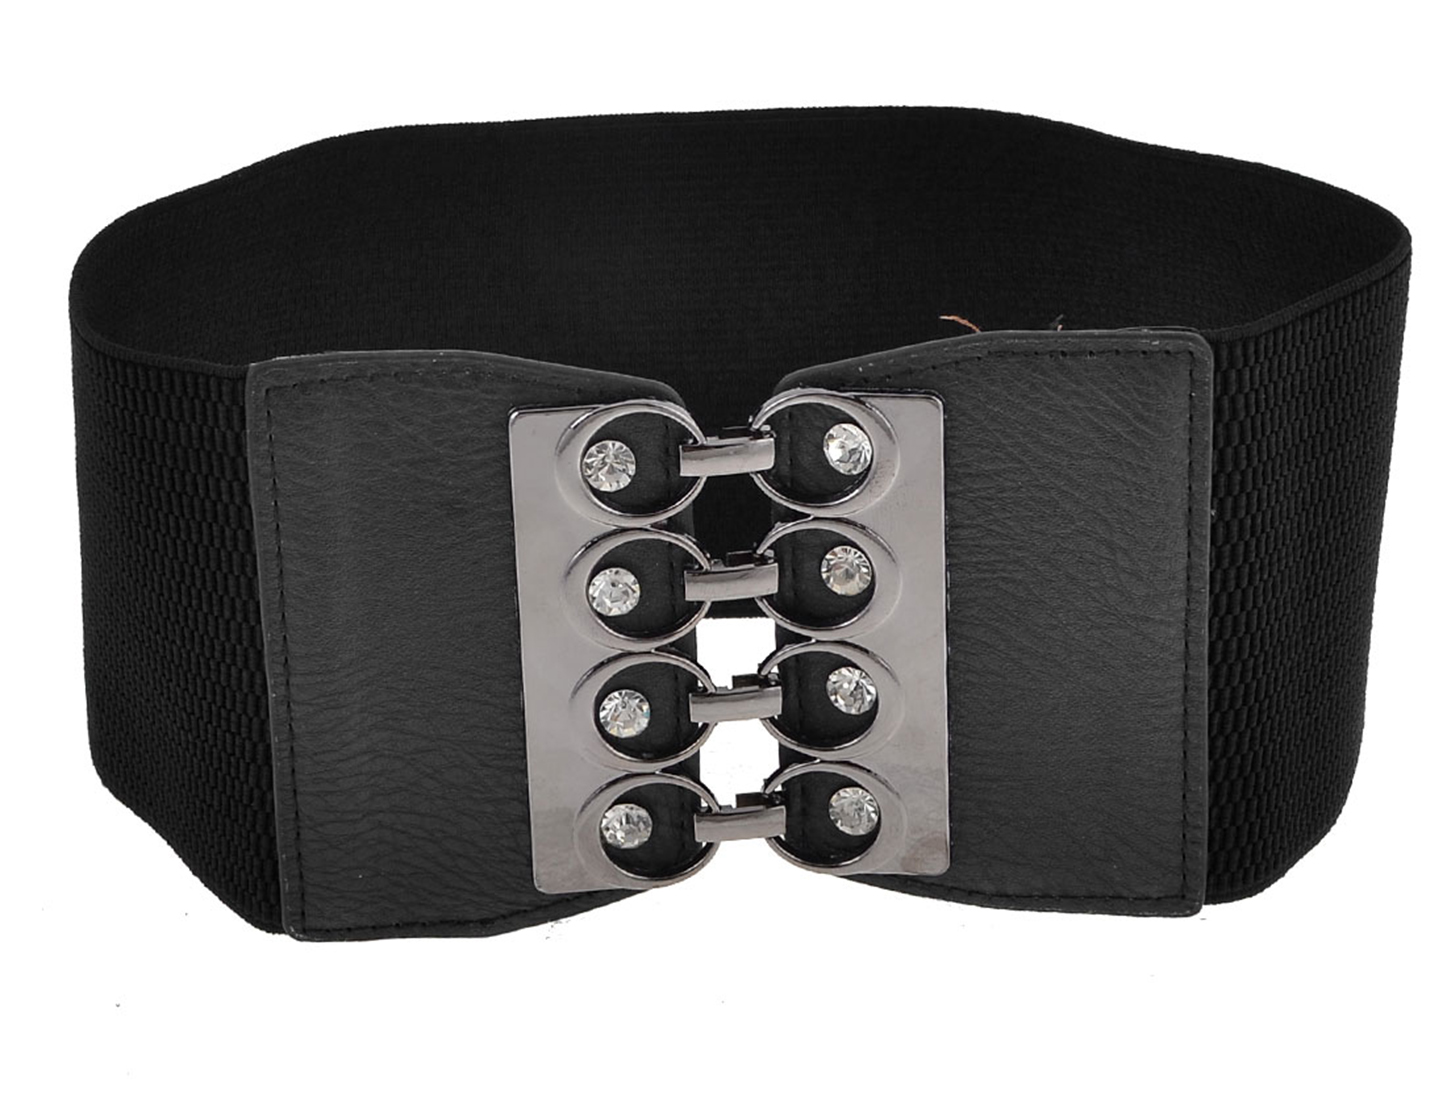 Faux Leather Buckle Part 10cm Wide Black Textured Waistband Cinch Belt for Women